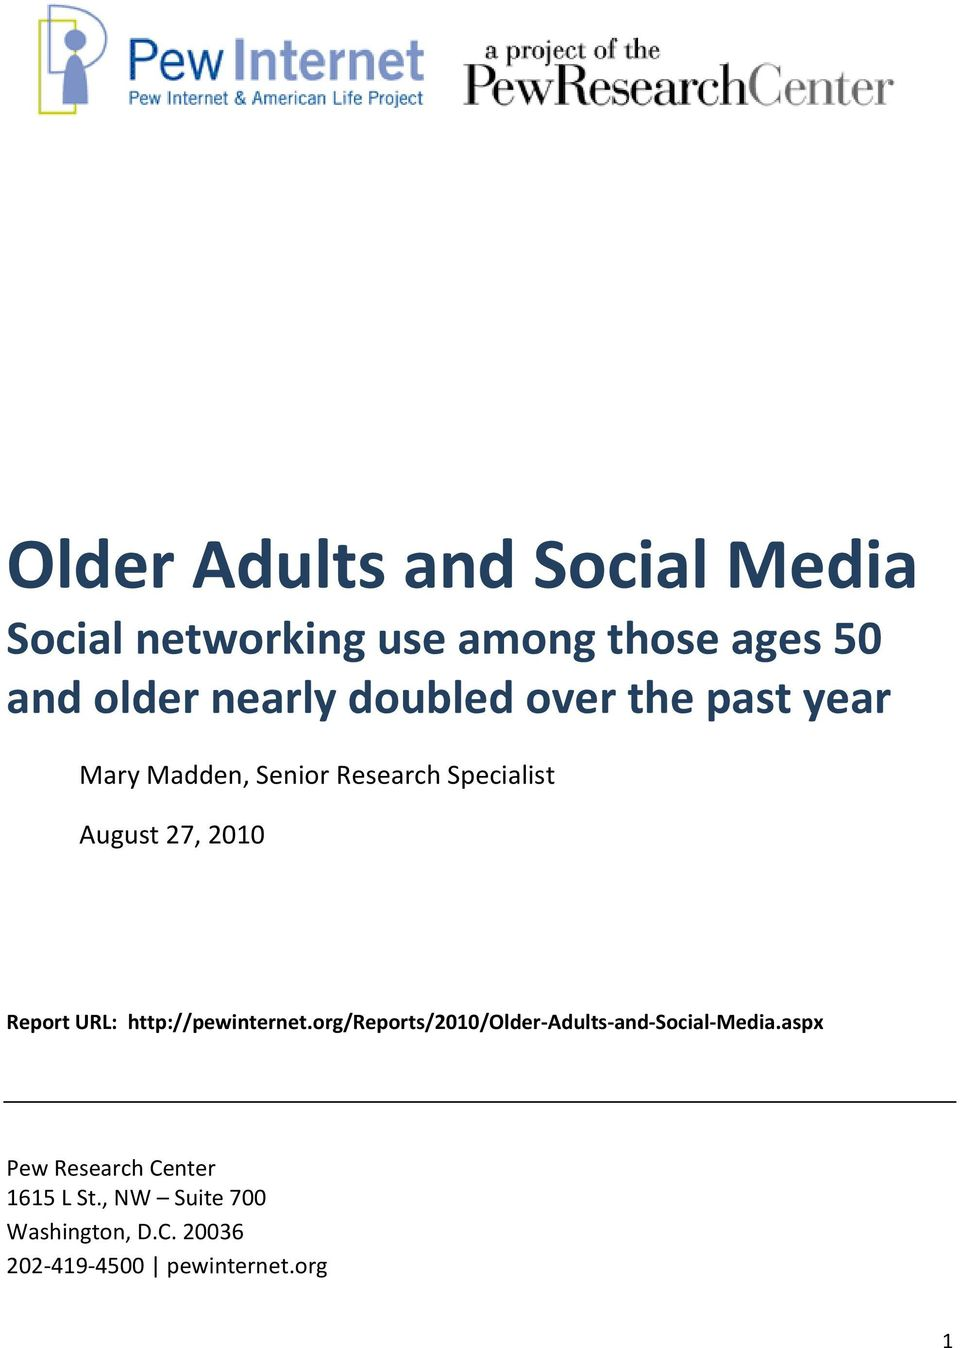 Report URL: http://pewinternet.org/reports/2010/older-adults-and-social-media.